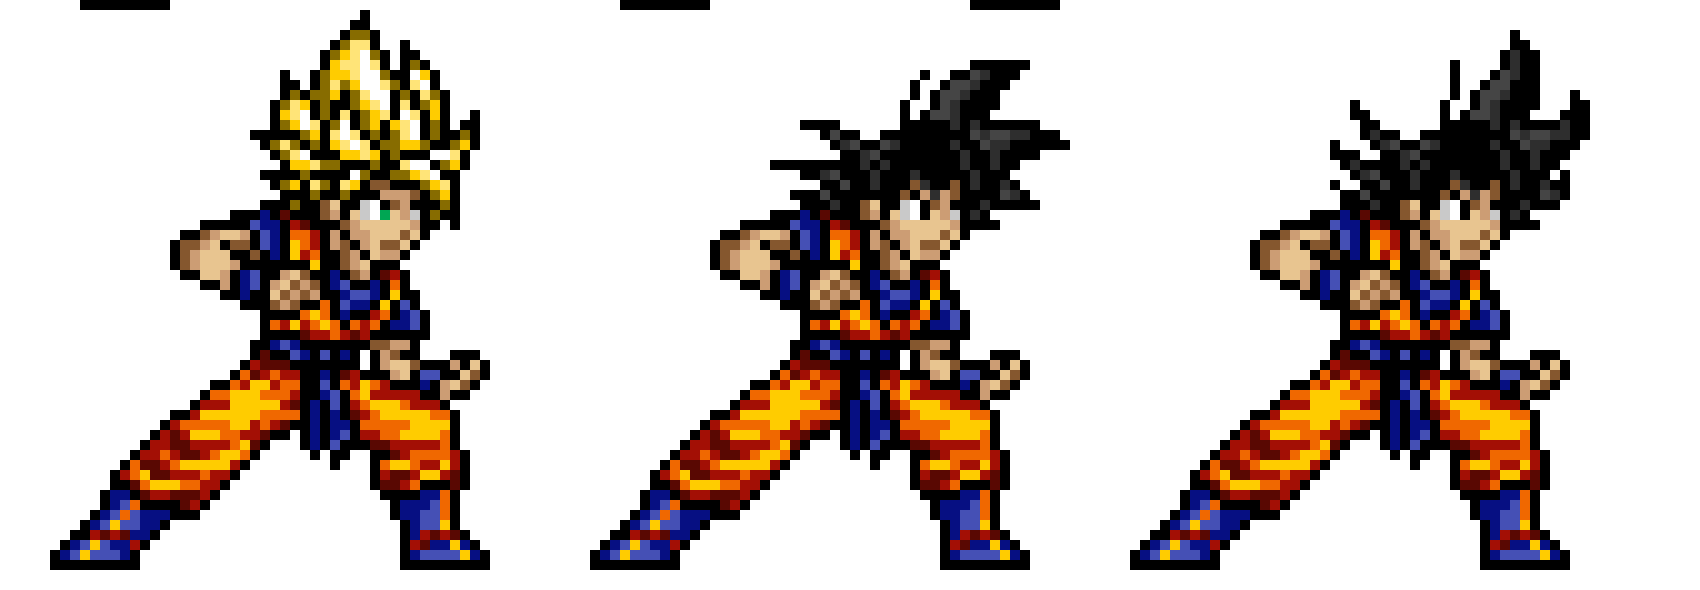 Dragon Ball Z Goku Pixel Art Maker